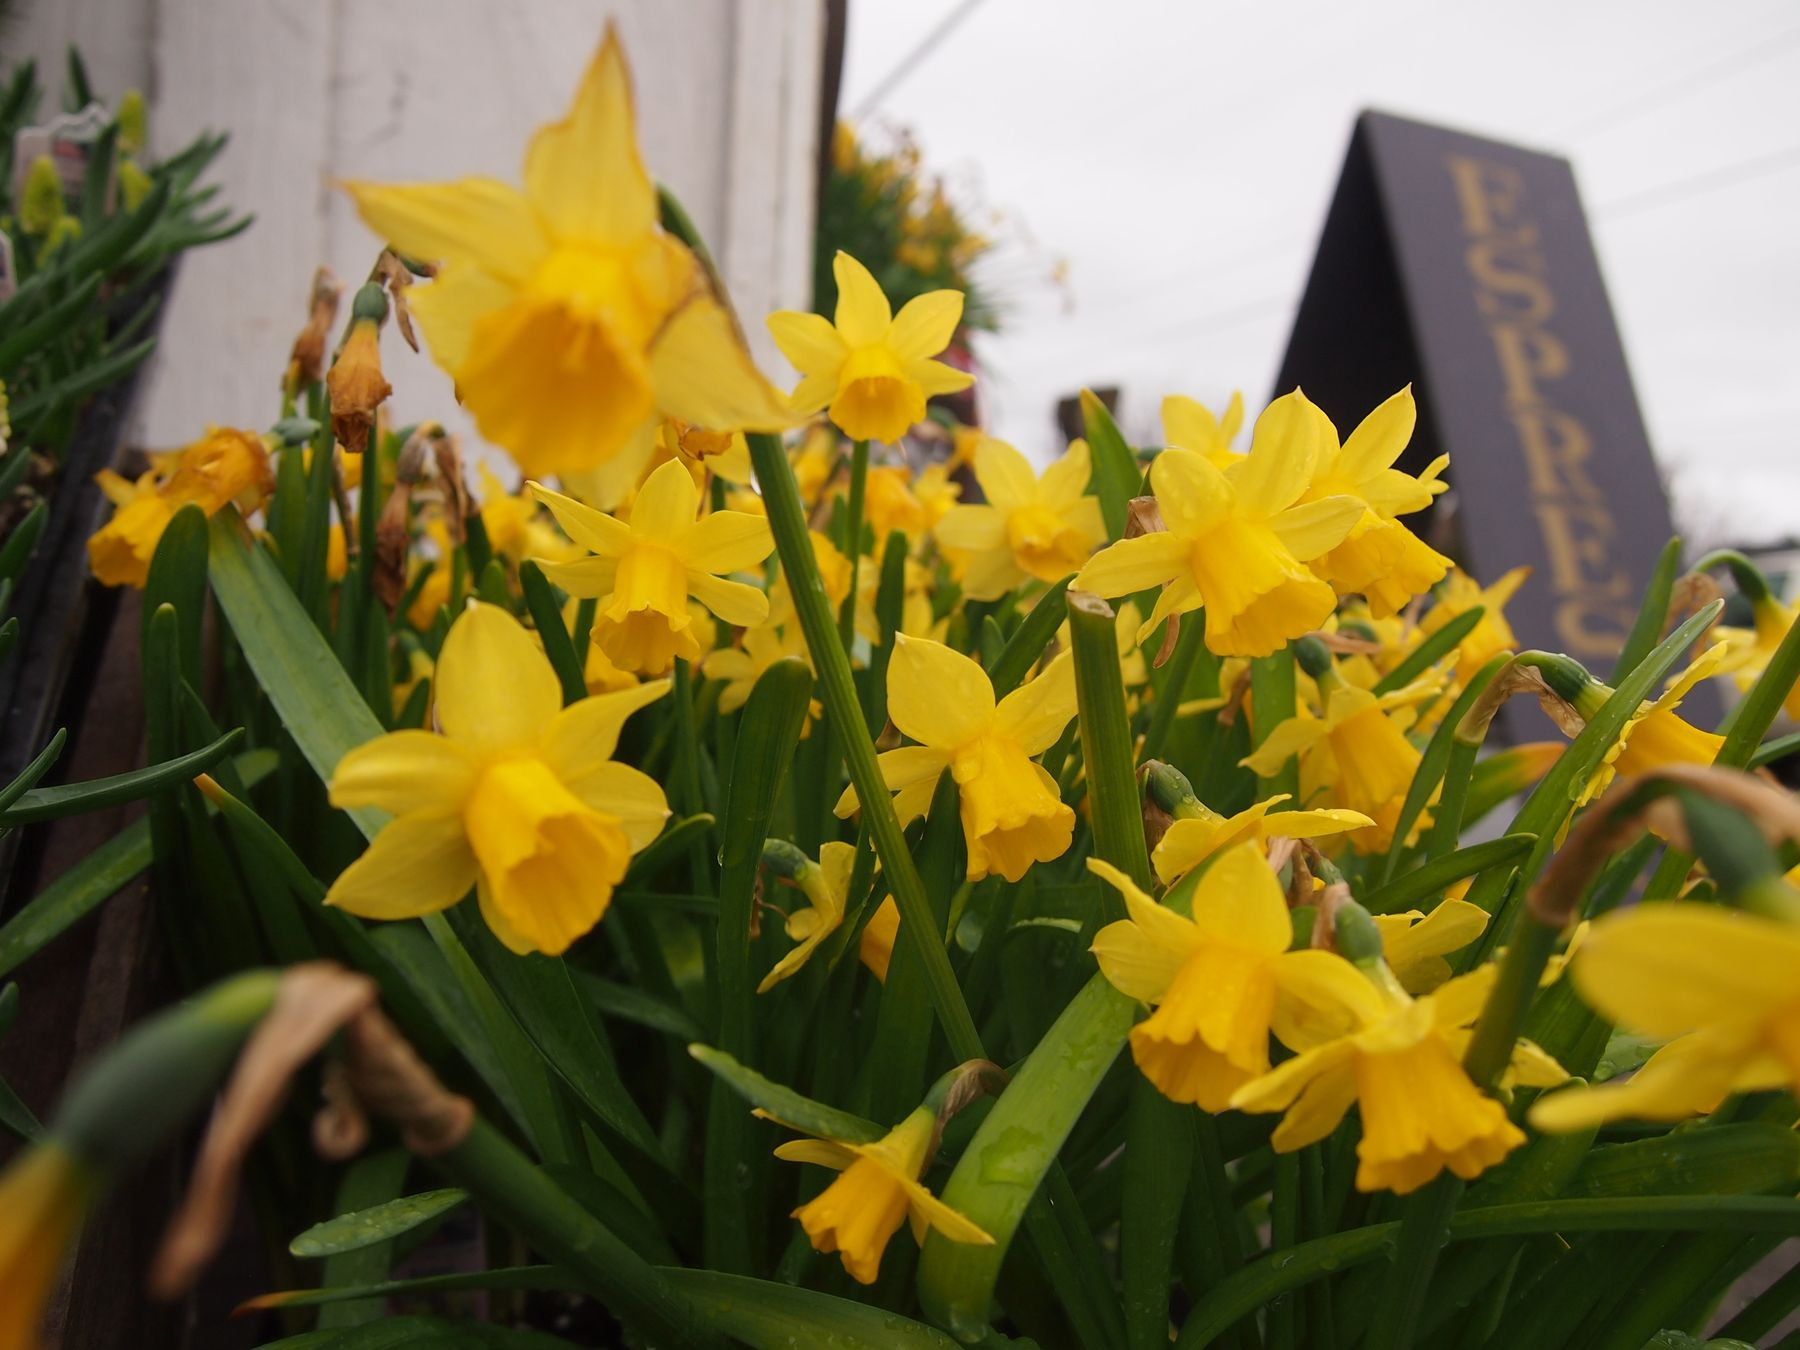 Daffodils, with a sign in background that says espresso